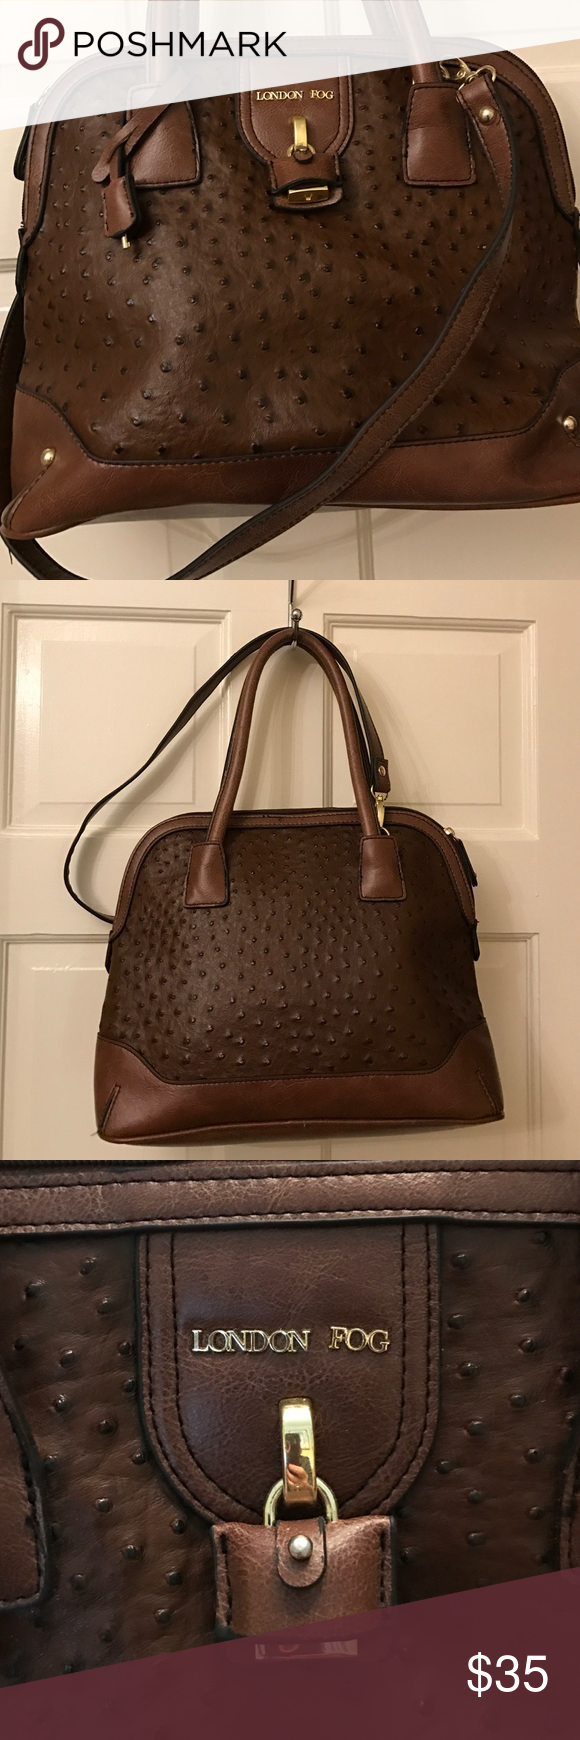 "London Fog simulated leather roomy purse Zipper pocket and two open pockets in clean mint interior. Exterior is well made and is in great condition. Has extra detachable shoulder strap. 13"" x 10.5"" x 5"" x 7"" strap drop plus extra 27"" detachable strap. London Fog Bags Shoulder Bags"